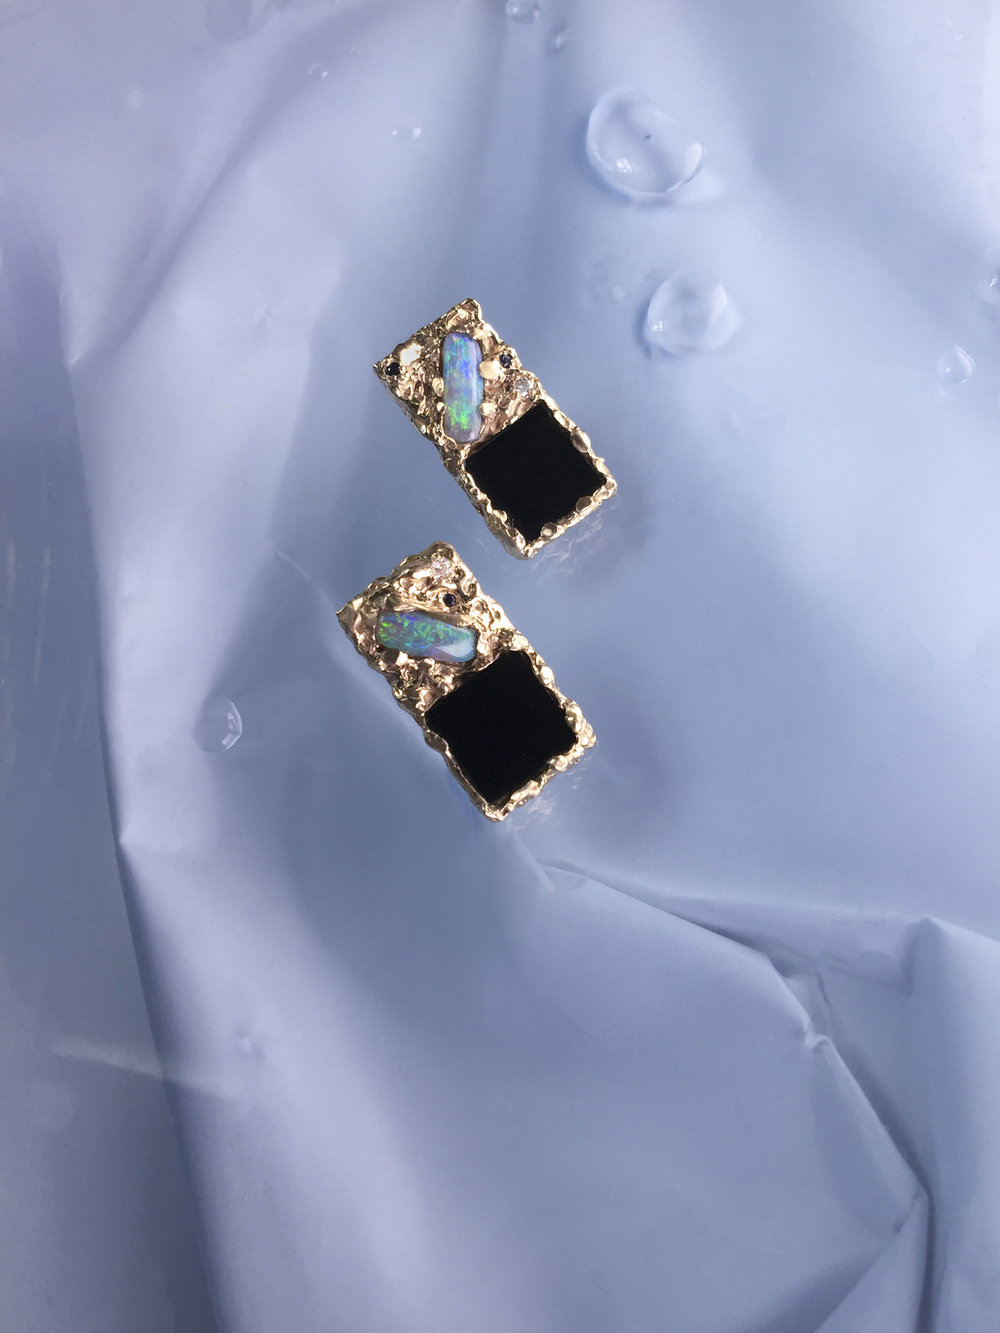 Zana Domino Earring | Onyx, opals and diamonds set in 9kt yellow gold.